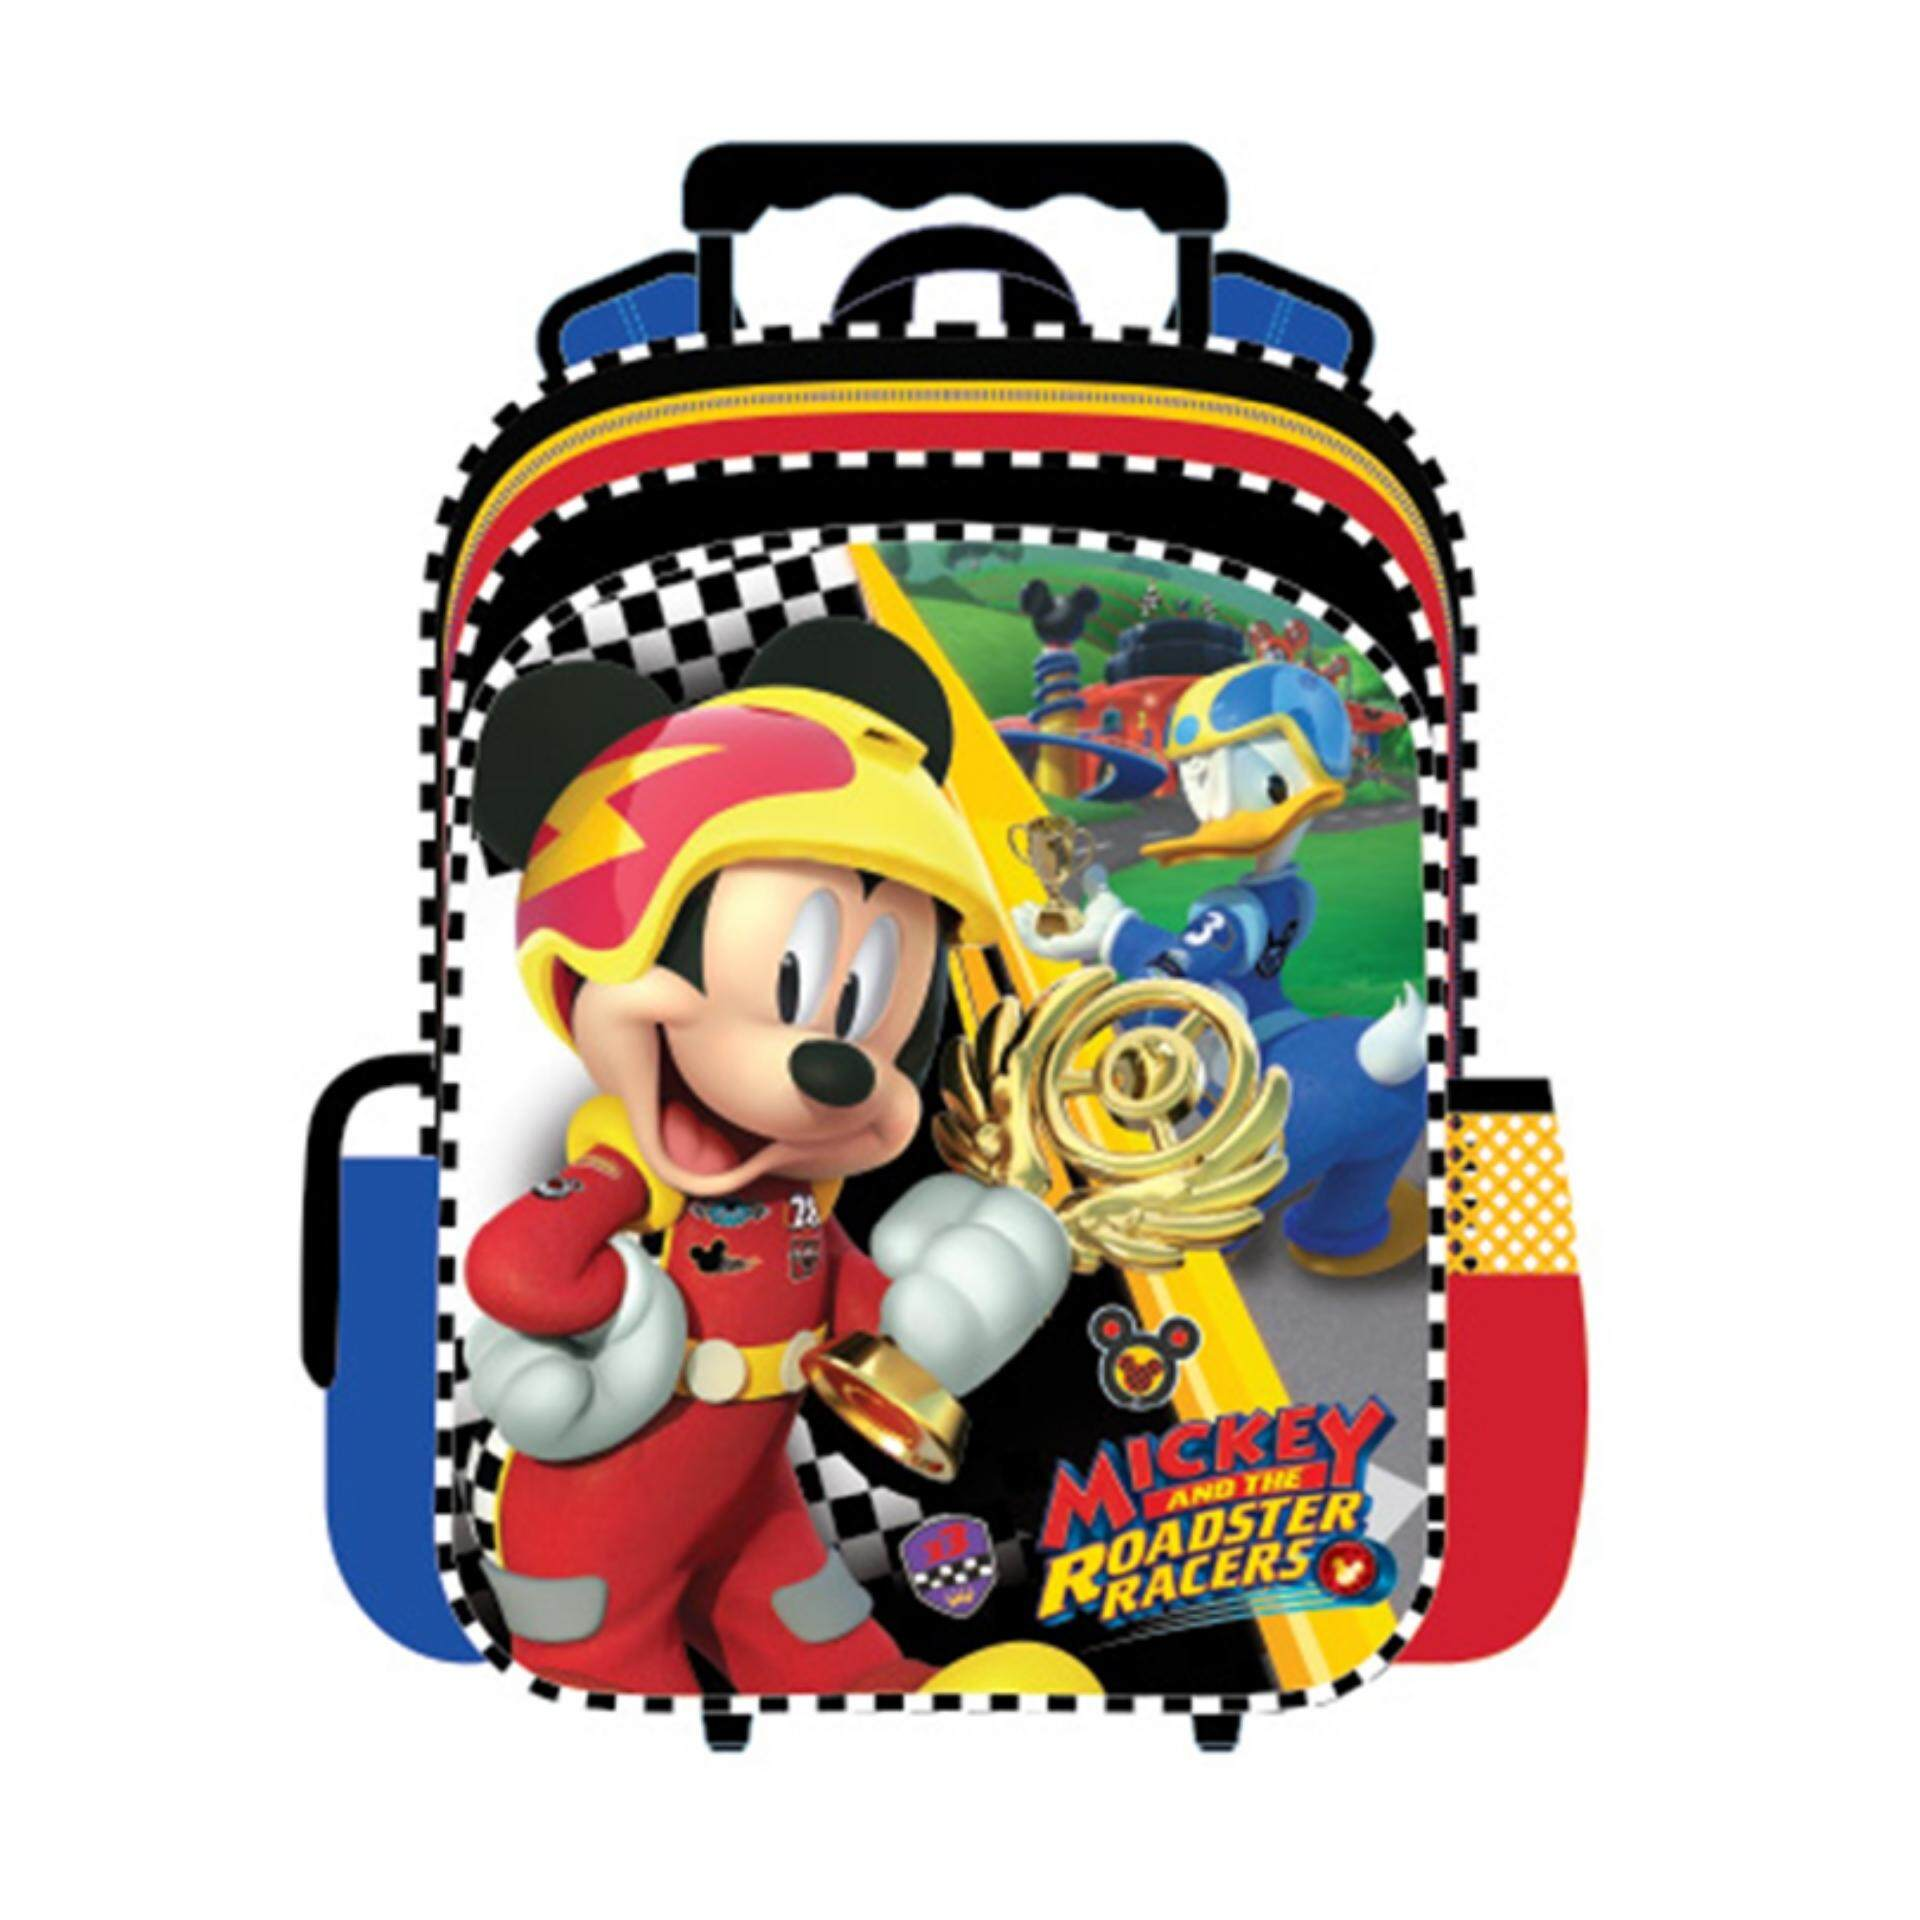 Disney Mickey Pre School Trolley Bag - Roadsters Racers